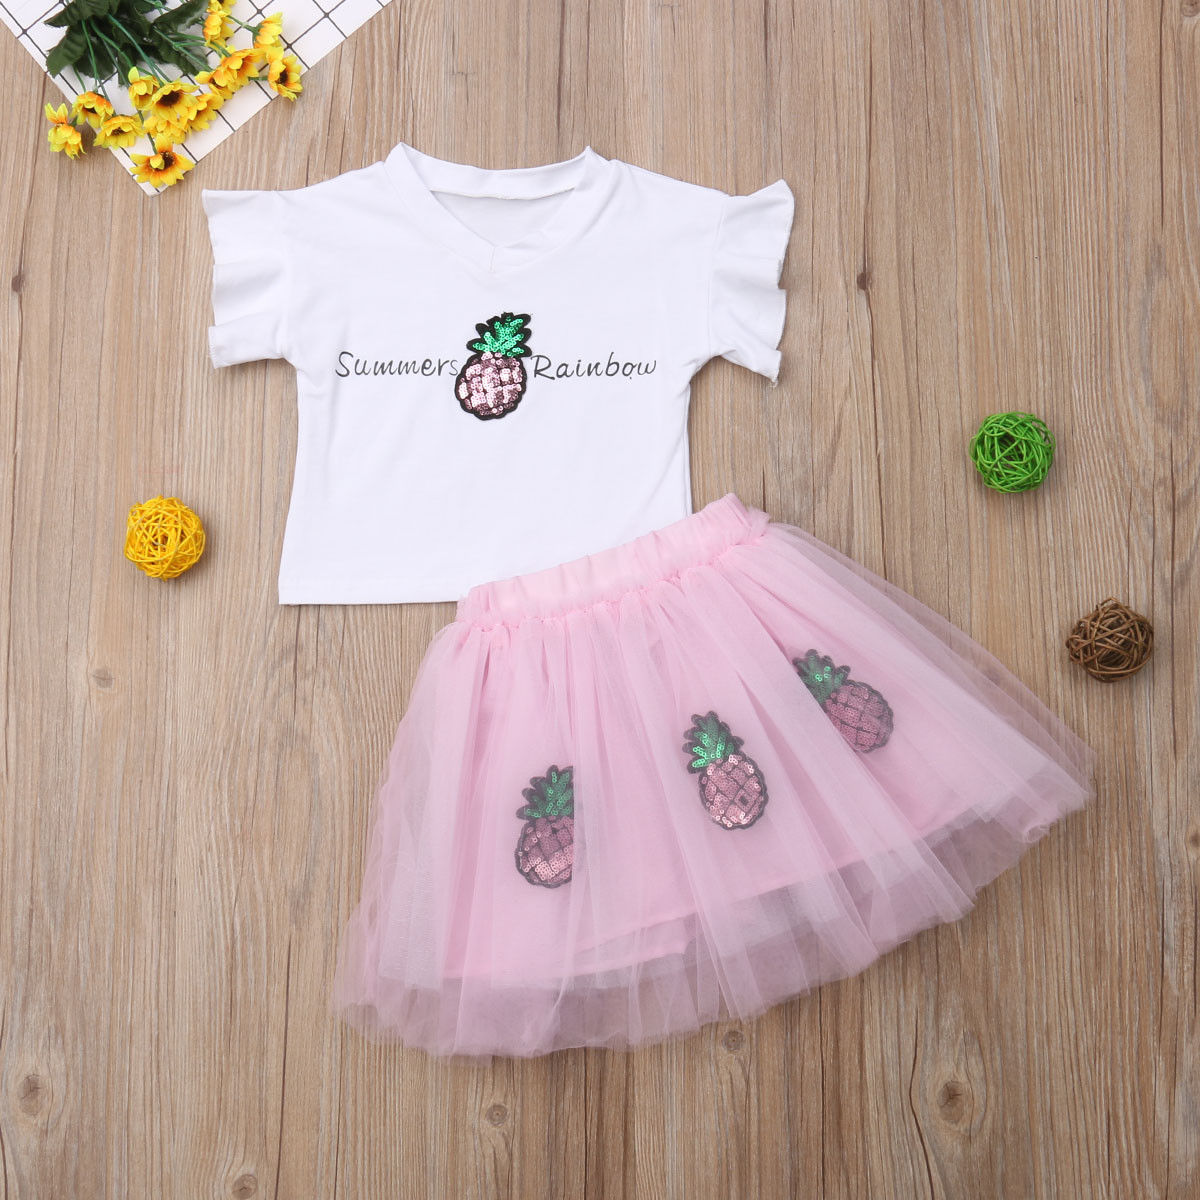 14deb67ce6 2018 Multitrust Brand Summer Kids Baby Girls Pineapple Rainbow Sequin Tops  T-shirt Tulle Skirt Tutu Outfit Summer Cute Set